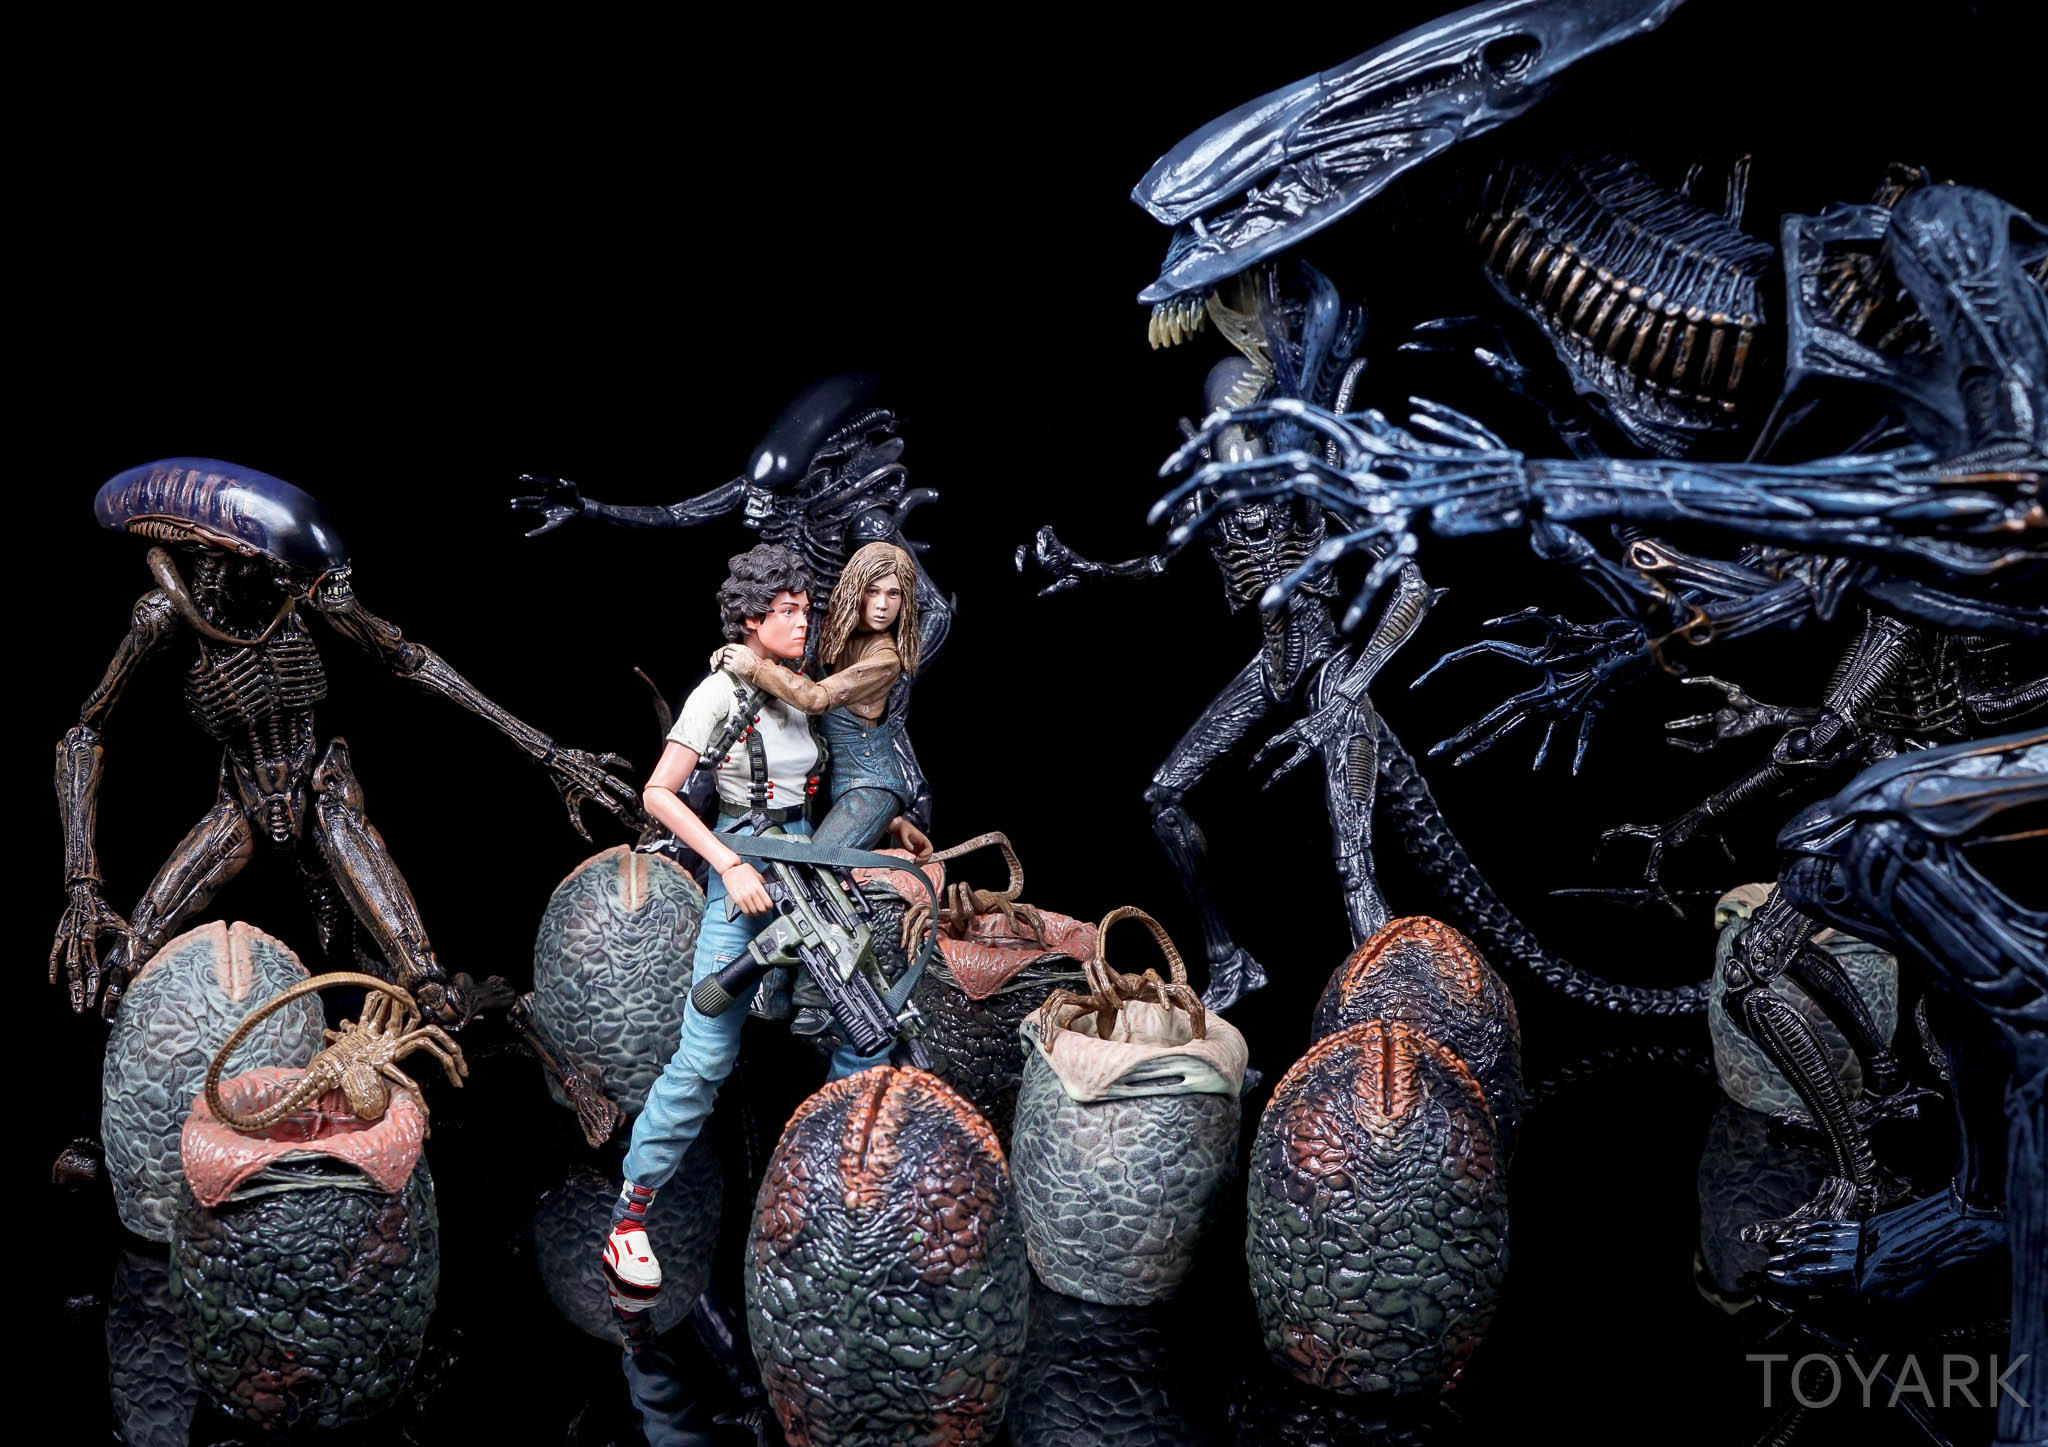 http://news.toyark.com/wp-content/uploads/sites/4/2016/08/NECA-SDCC2016-Aliens-Newt-044.jpg